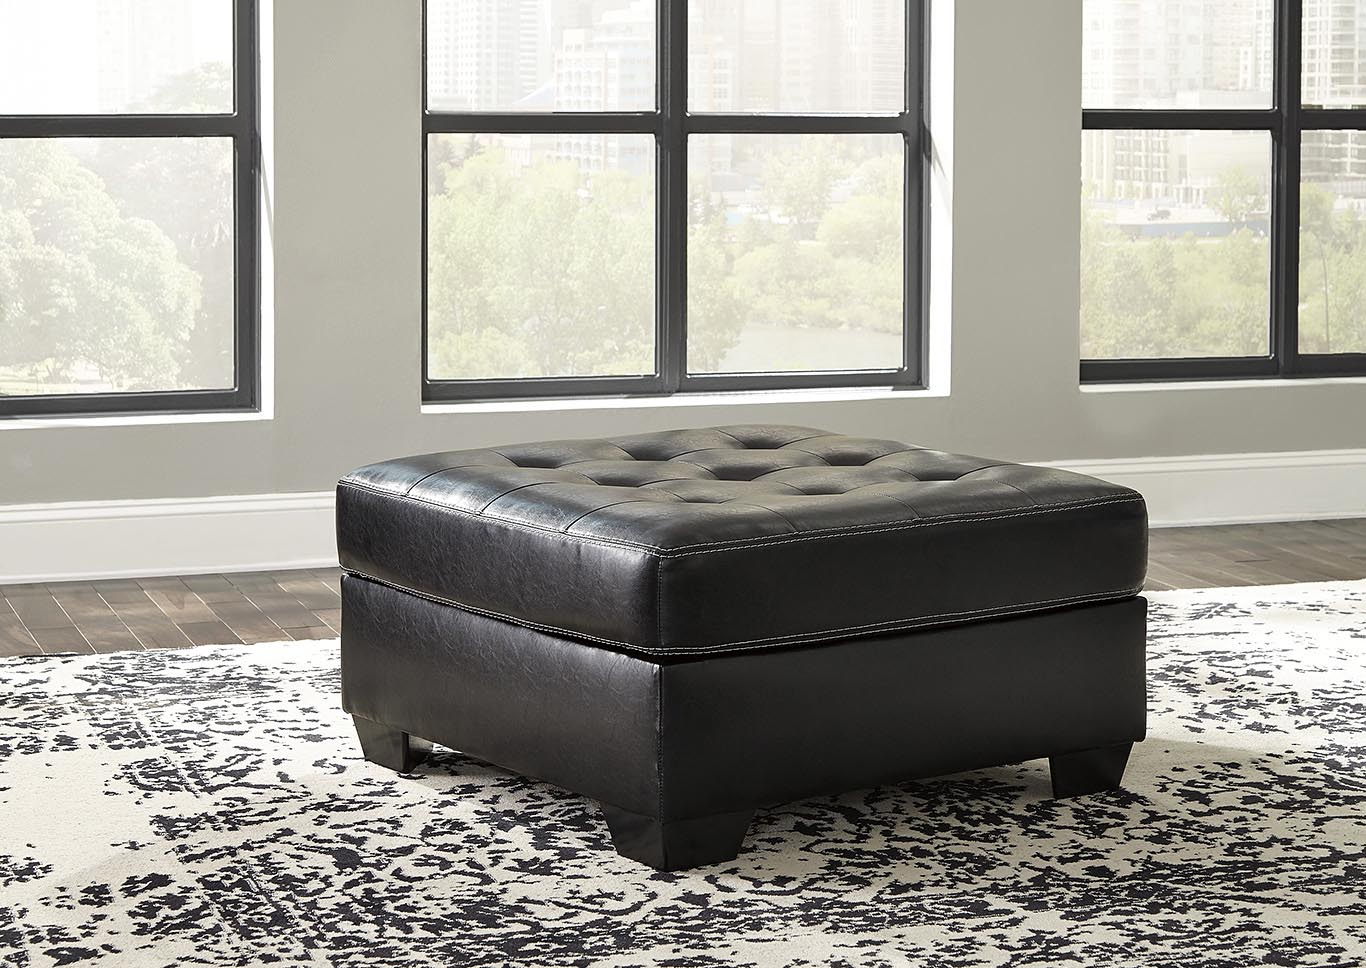 Jacurso Charcoal Oversized Accent Ottoman,Signature Design By Ashley